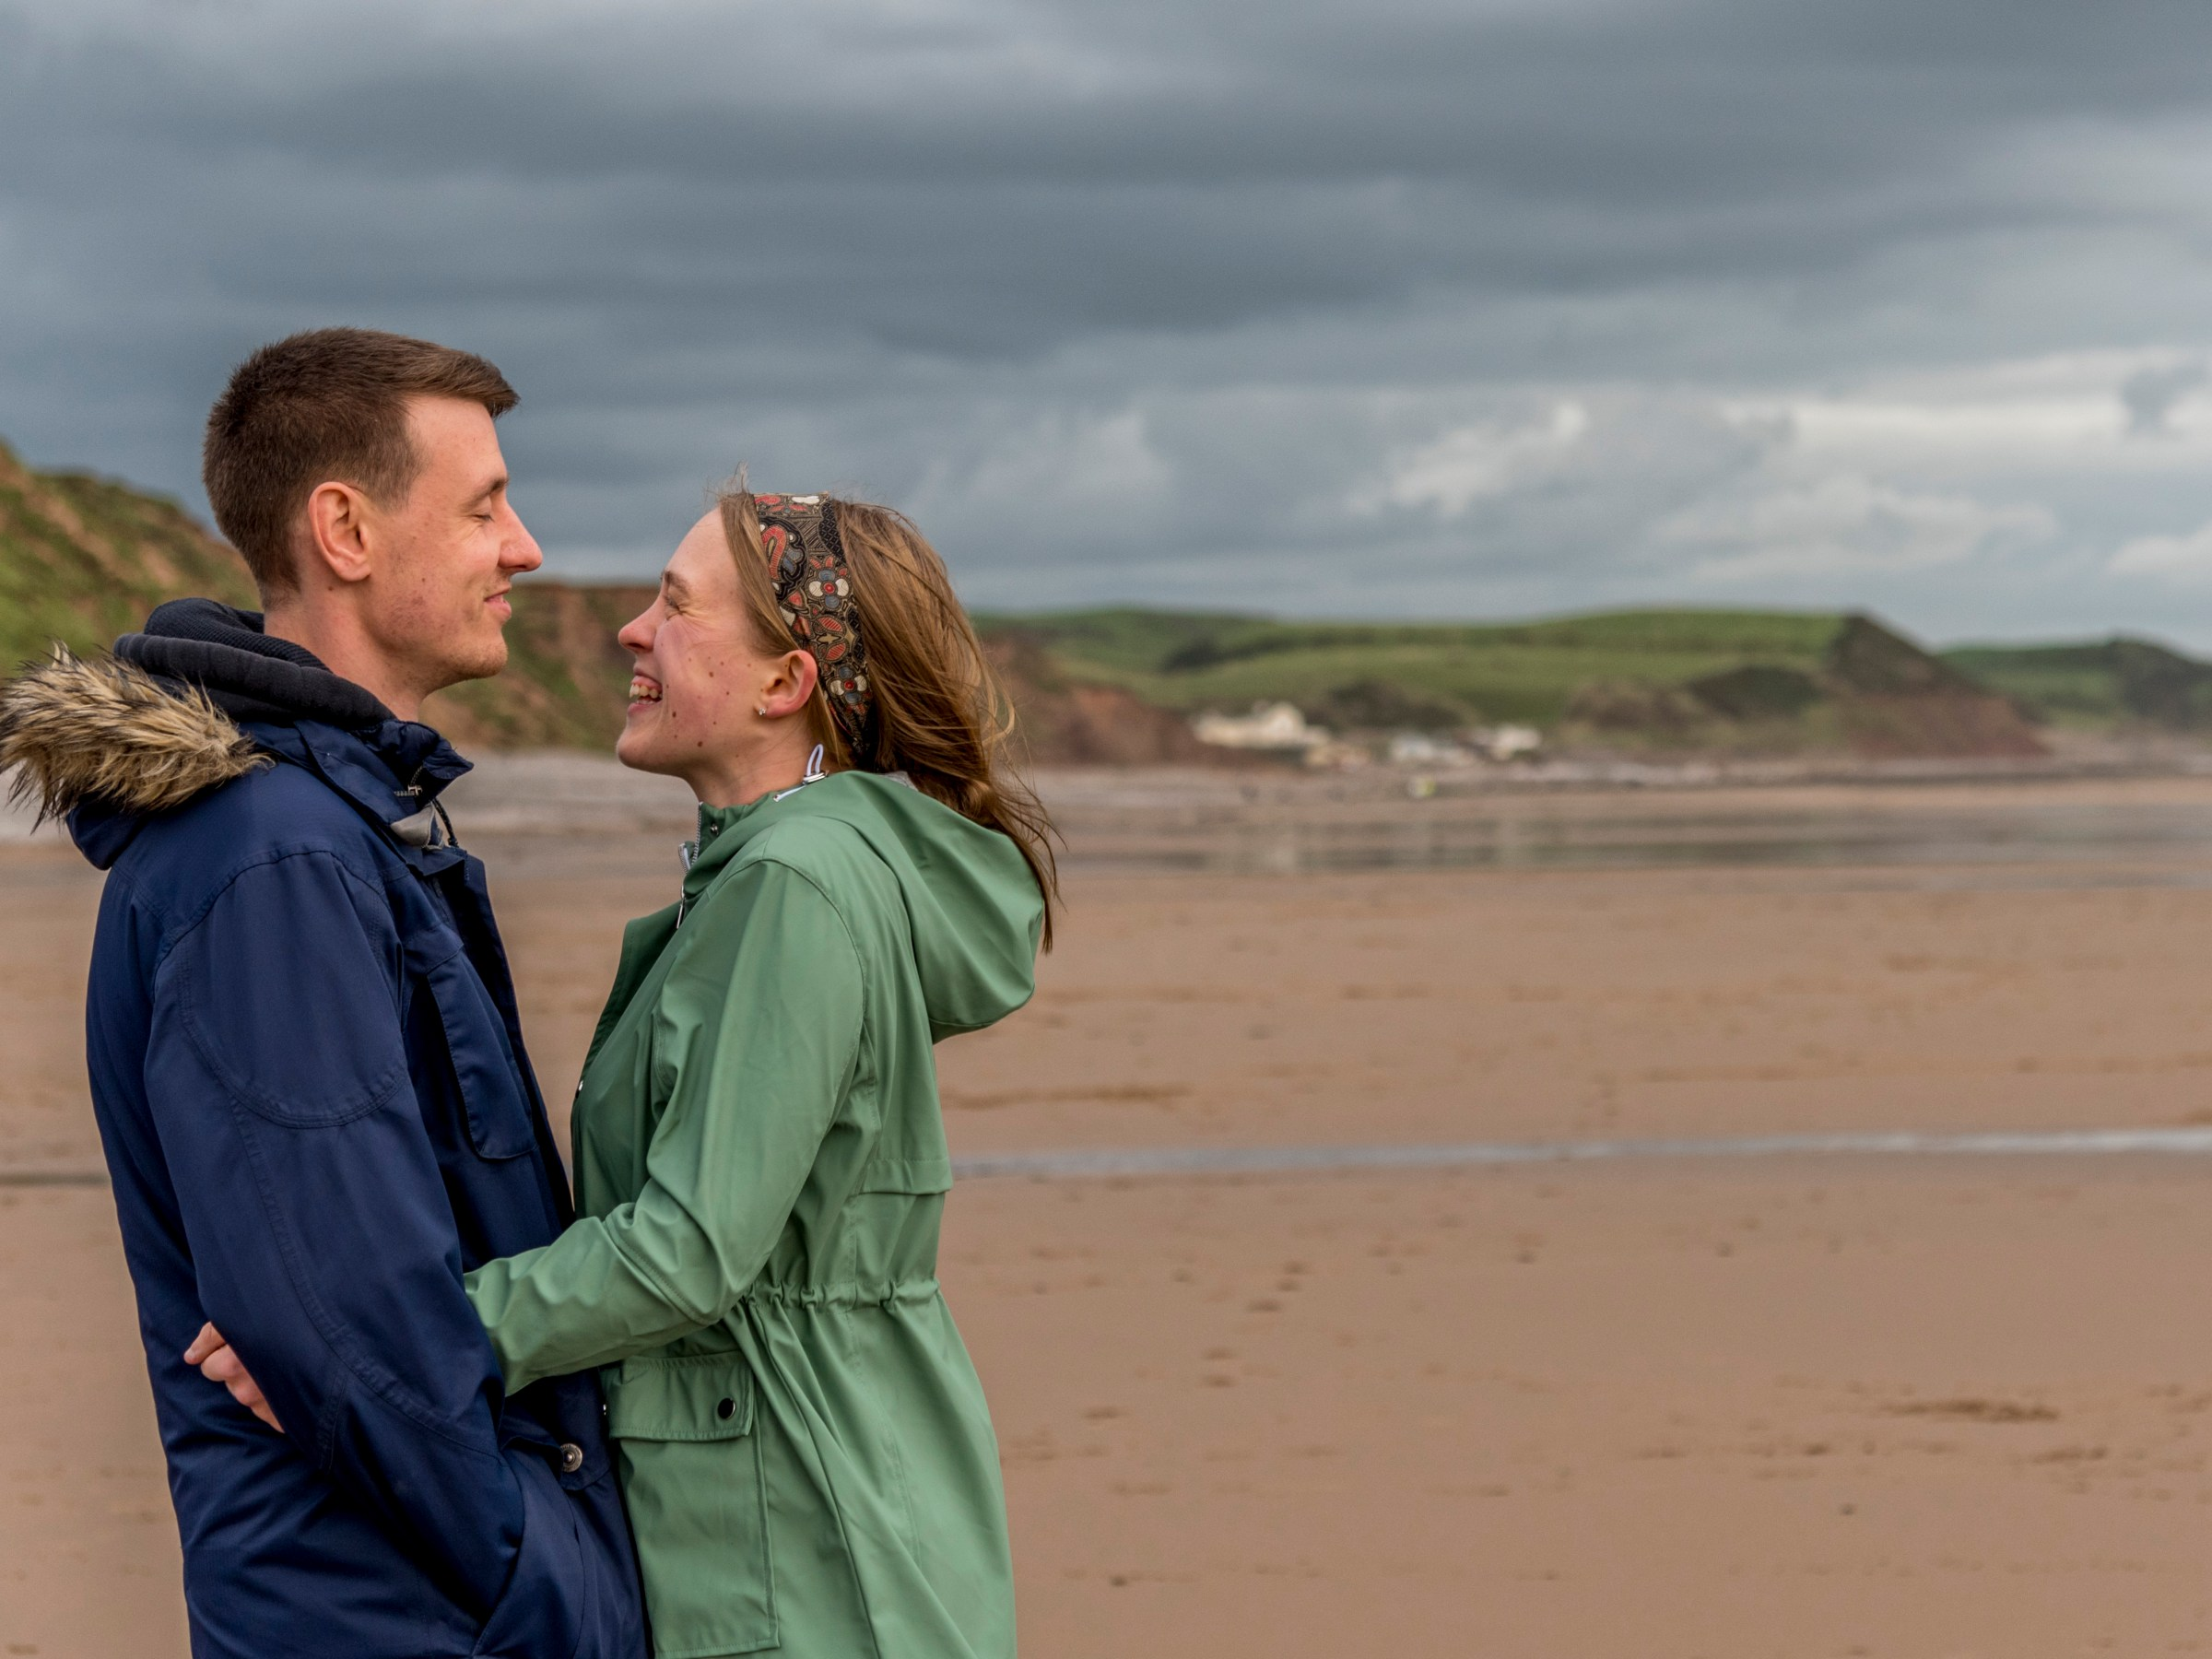 St Bees Coastal Engagement shoot by Radiance Photography. Relaxed, contemporary photography in Cumbria and the Lake District.